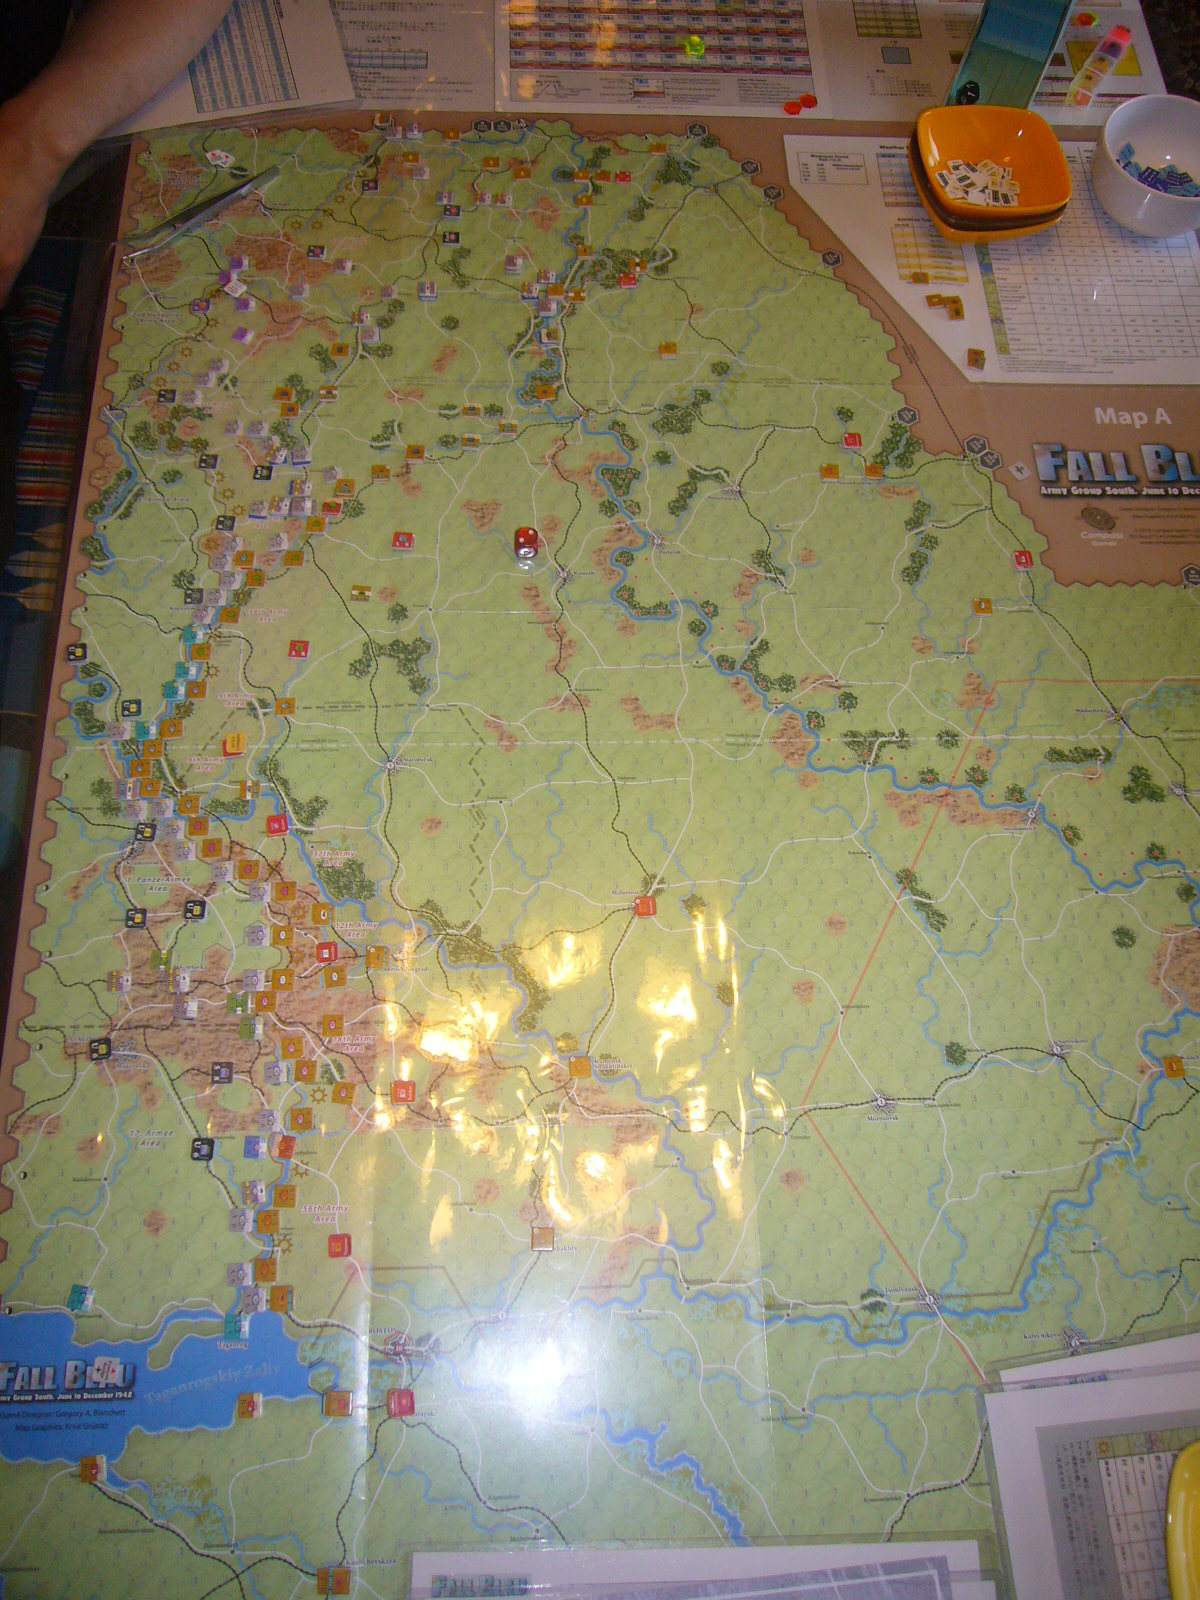 (Compass)FALL BLAU: Army Group South, June to December 1942 青作戦:史実の7月キャンペーンお試し5人戦➋_b0173672_19524885.jpg